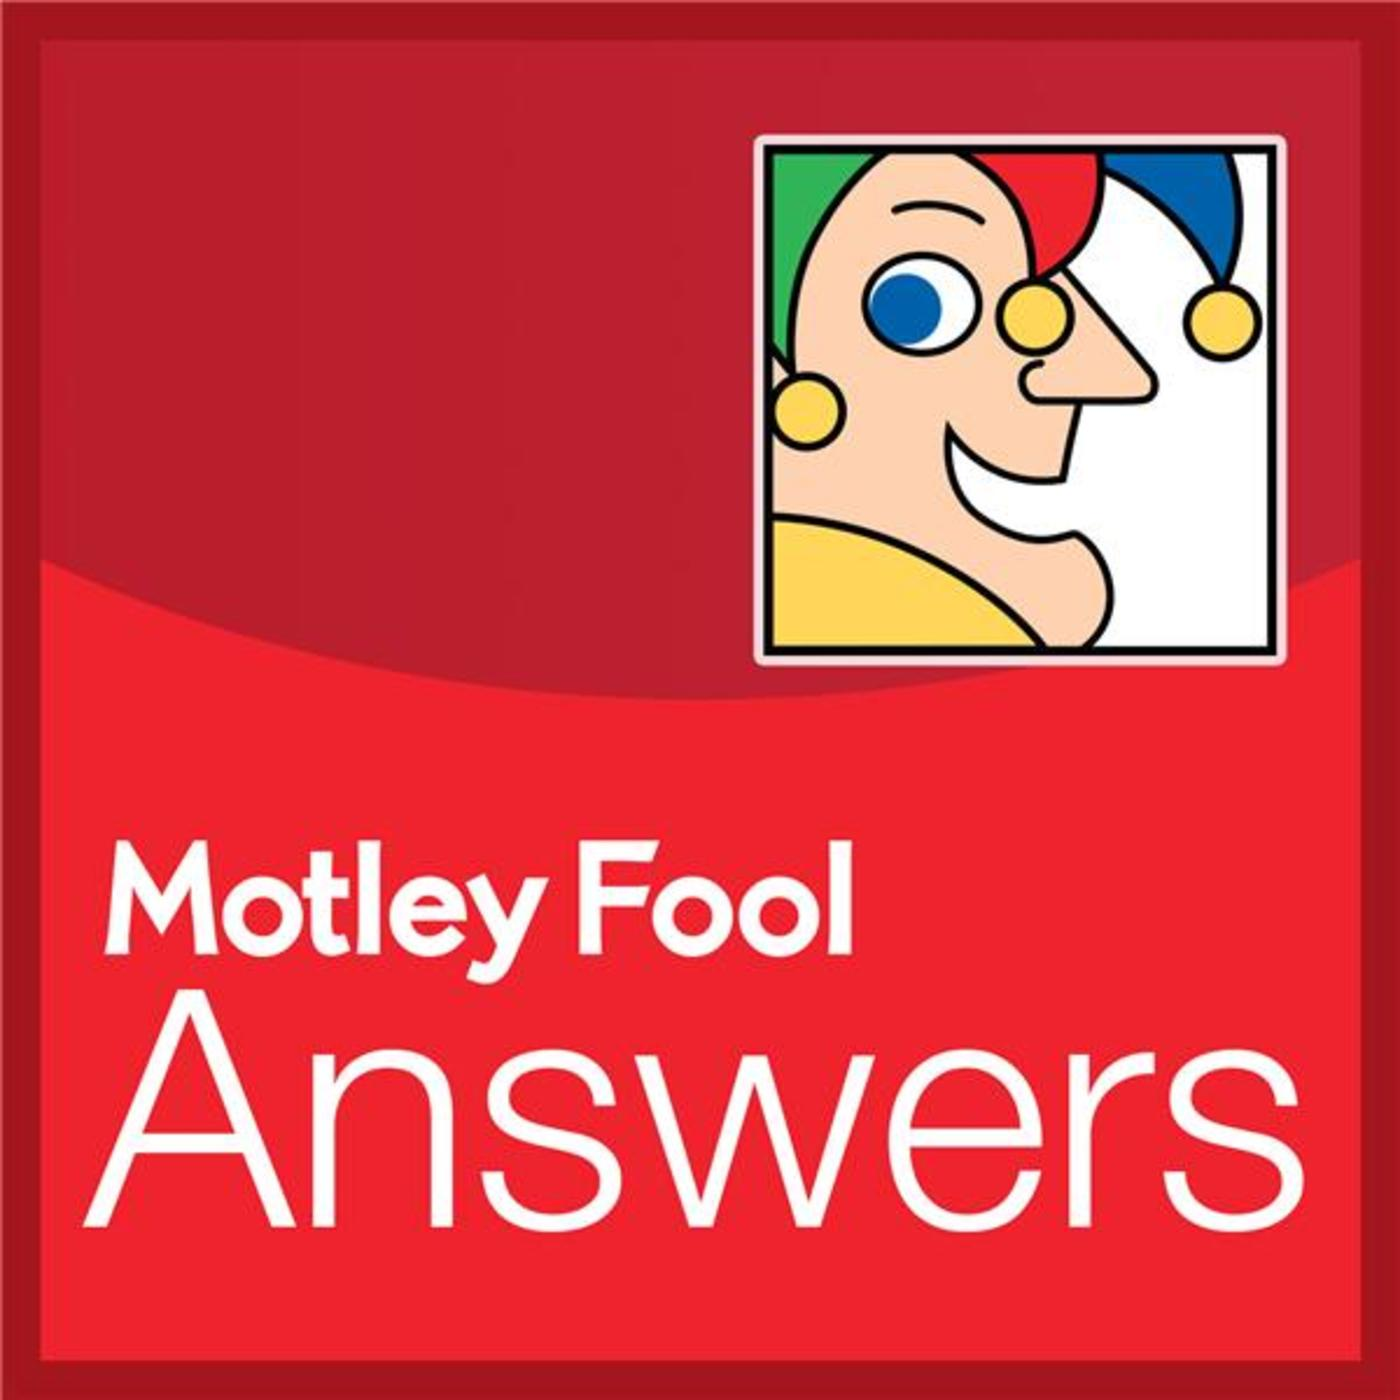 Motley Fool Answers